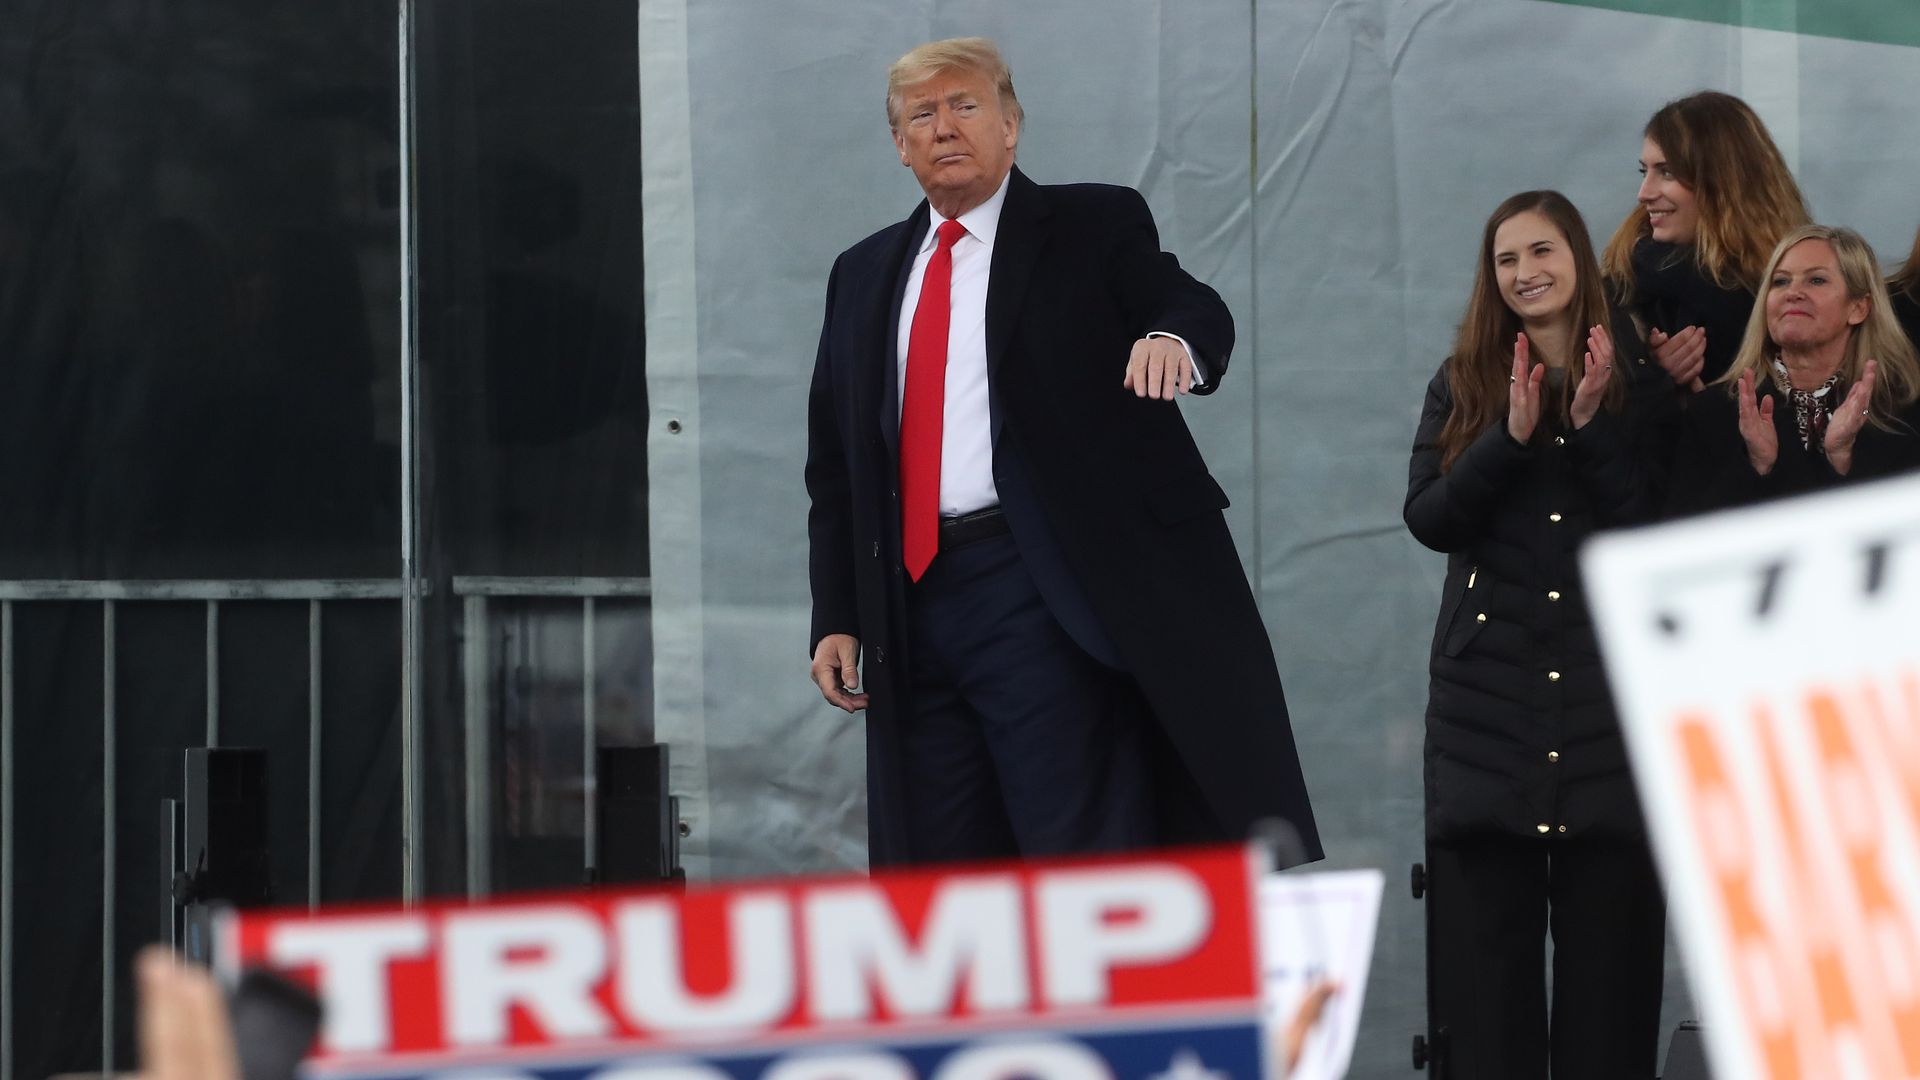 Trump stands in front of a crowd.